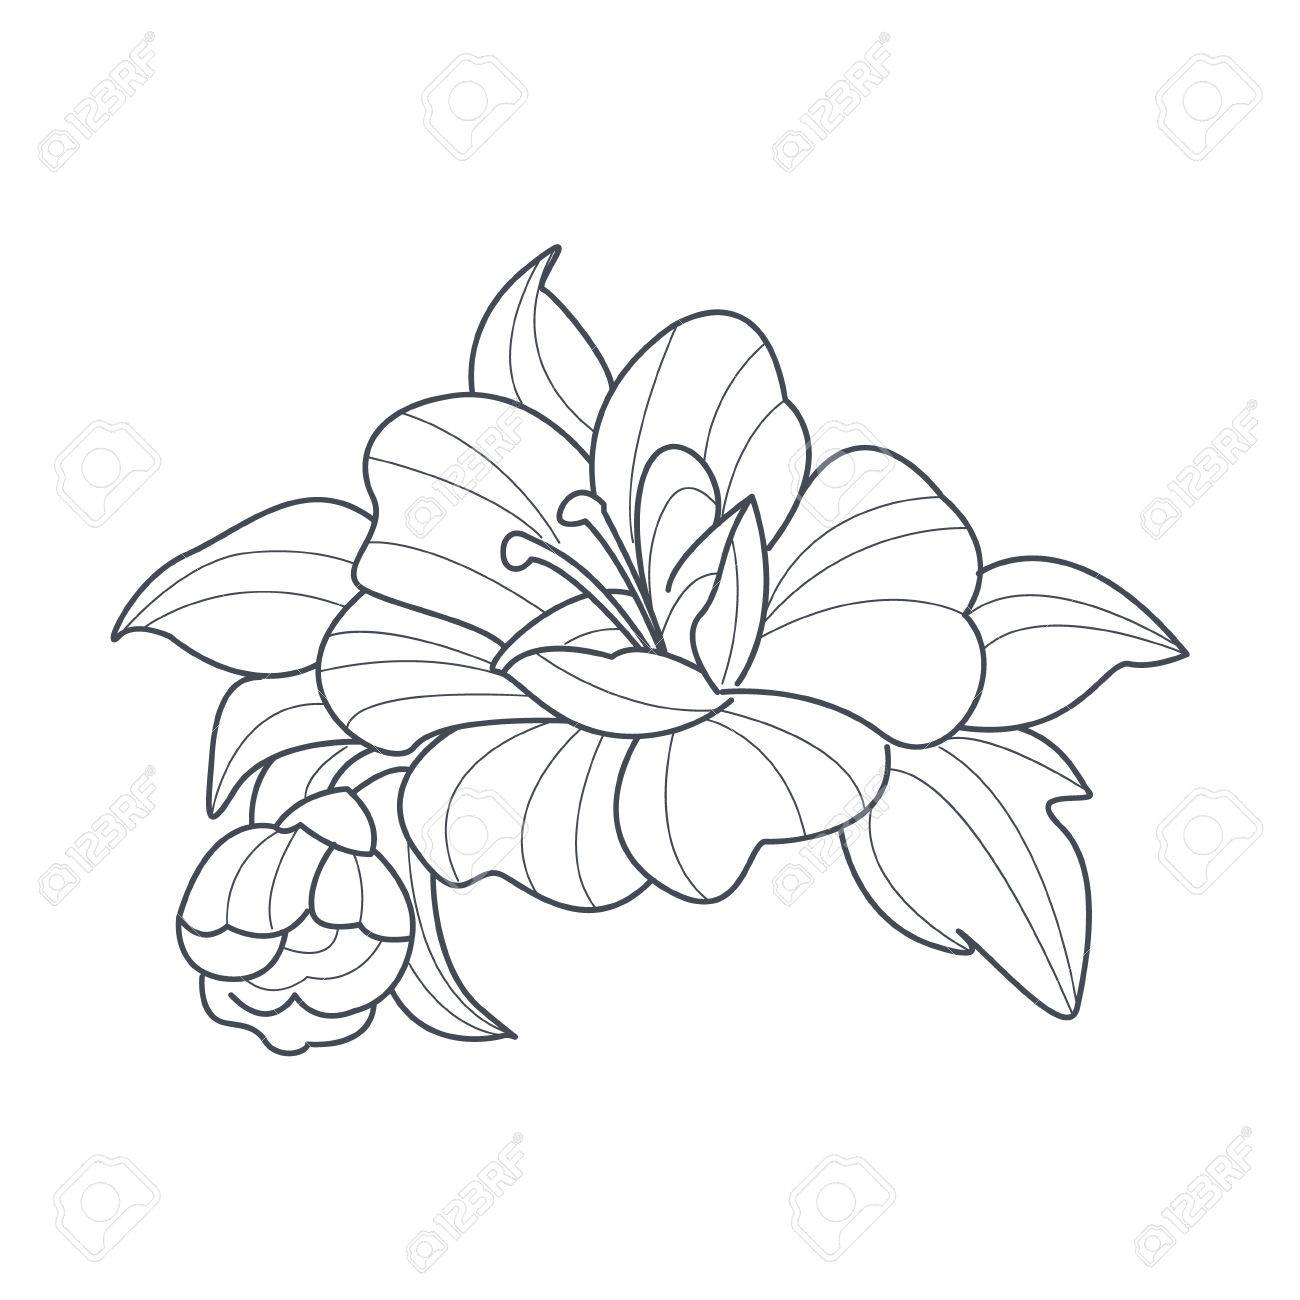 Dog Rose Flower Monochrome Drawing For Coloring Book Hand Drawn Vector Simple Style Illustration Stock